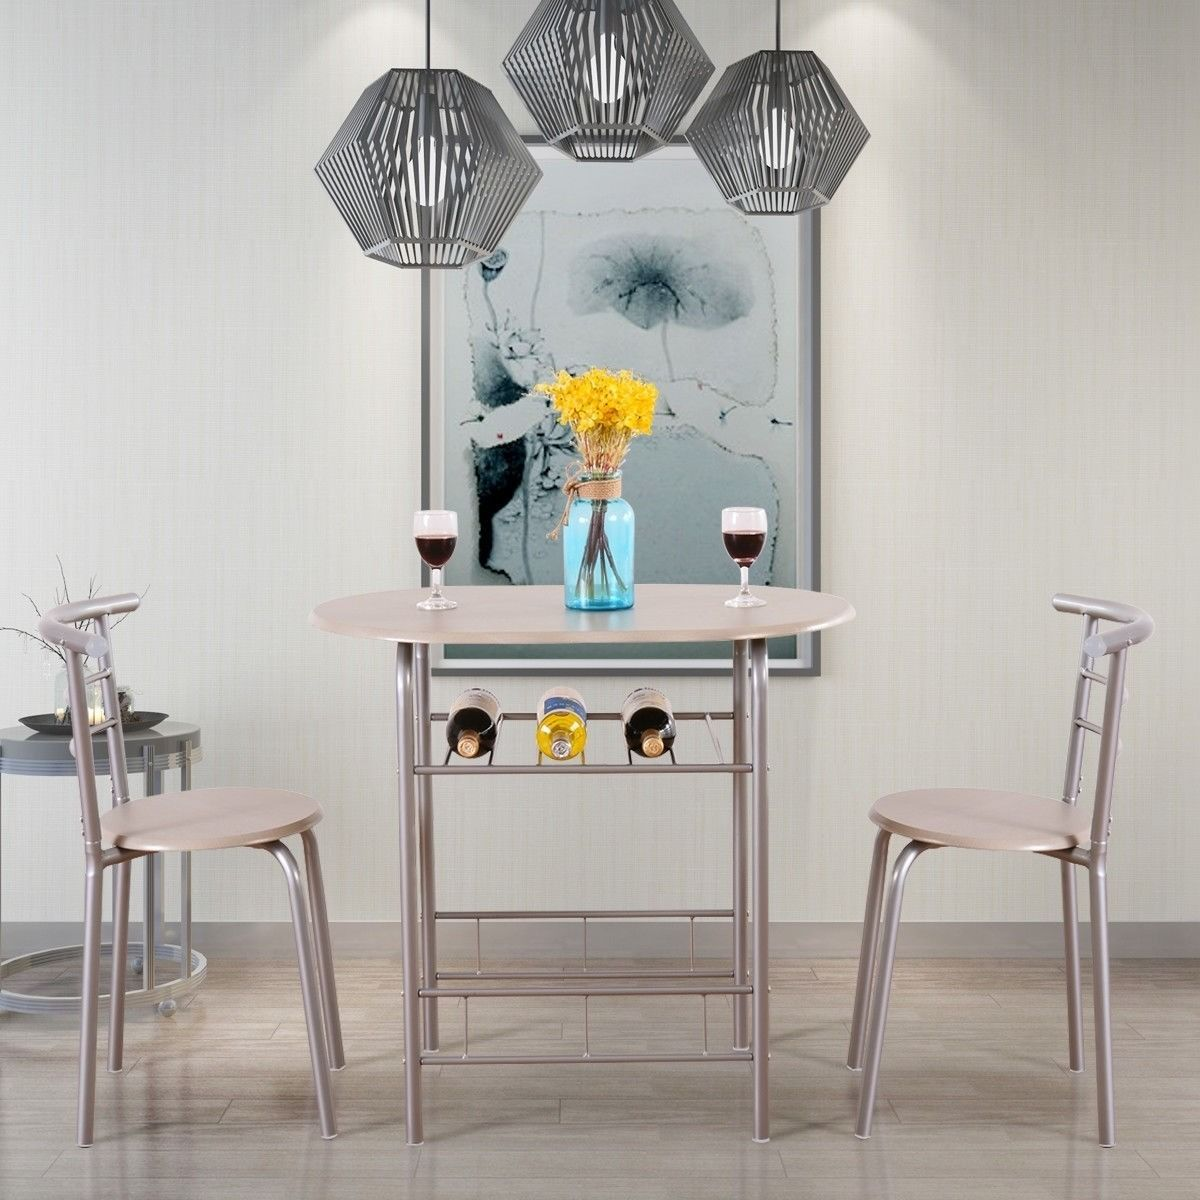 3 Pcs Home Kitchen Bistro Pub Dining Table 2 Chairs Set 72 95 Free Shipping This Is Stylish And Funct Metal Dining Room Cheap Dining Sets 3 Piece Dining Set